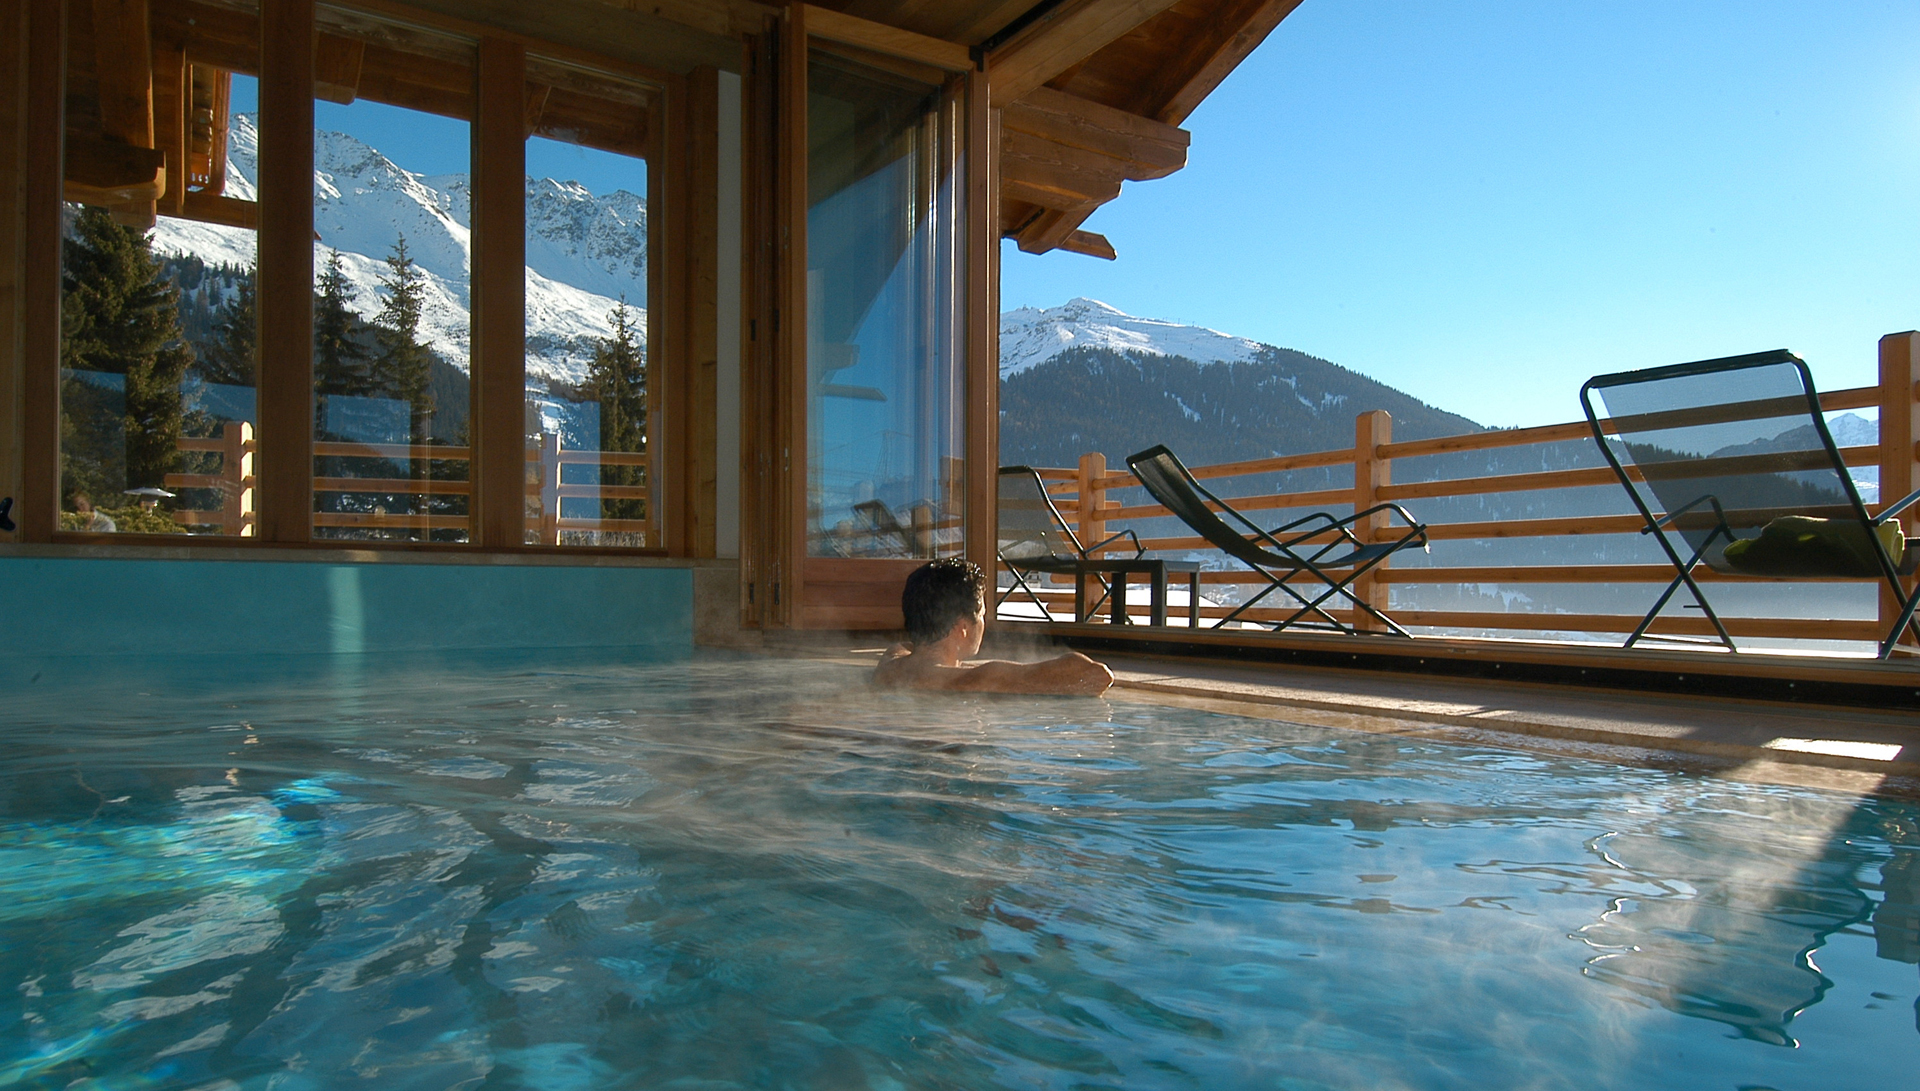 The Swimming Pool of Chalet d'Adrien